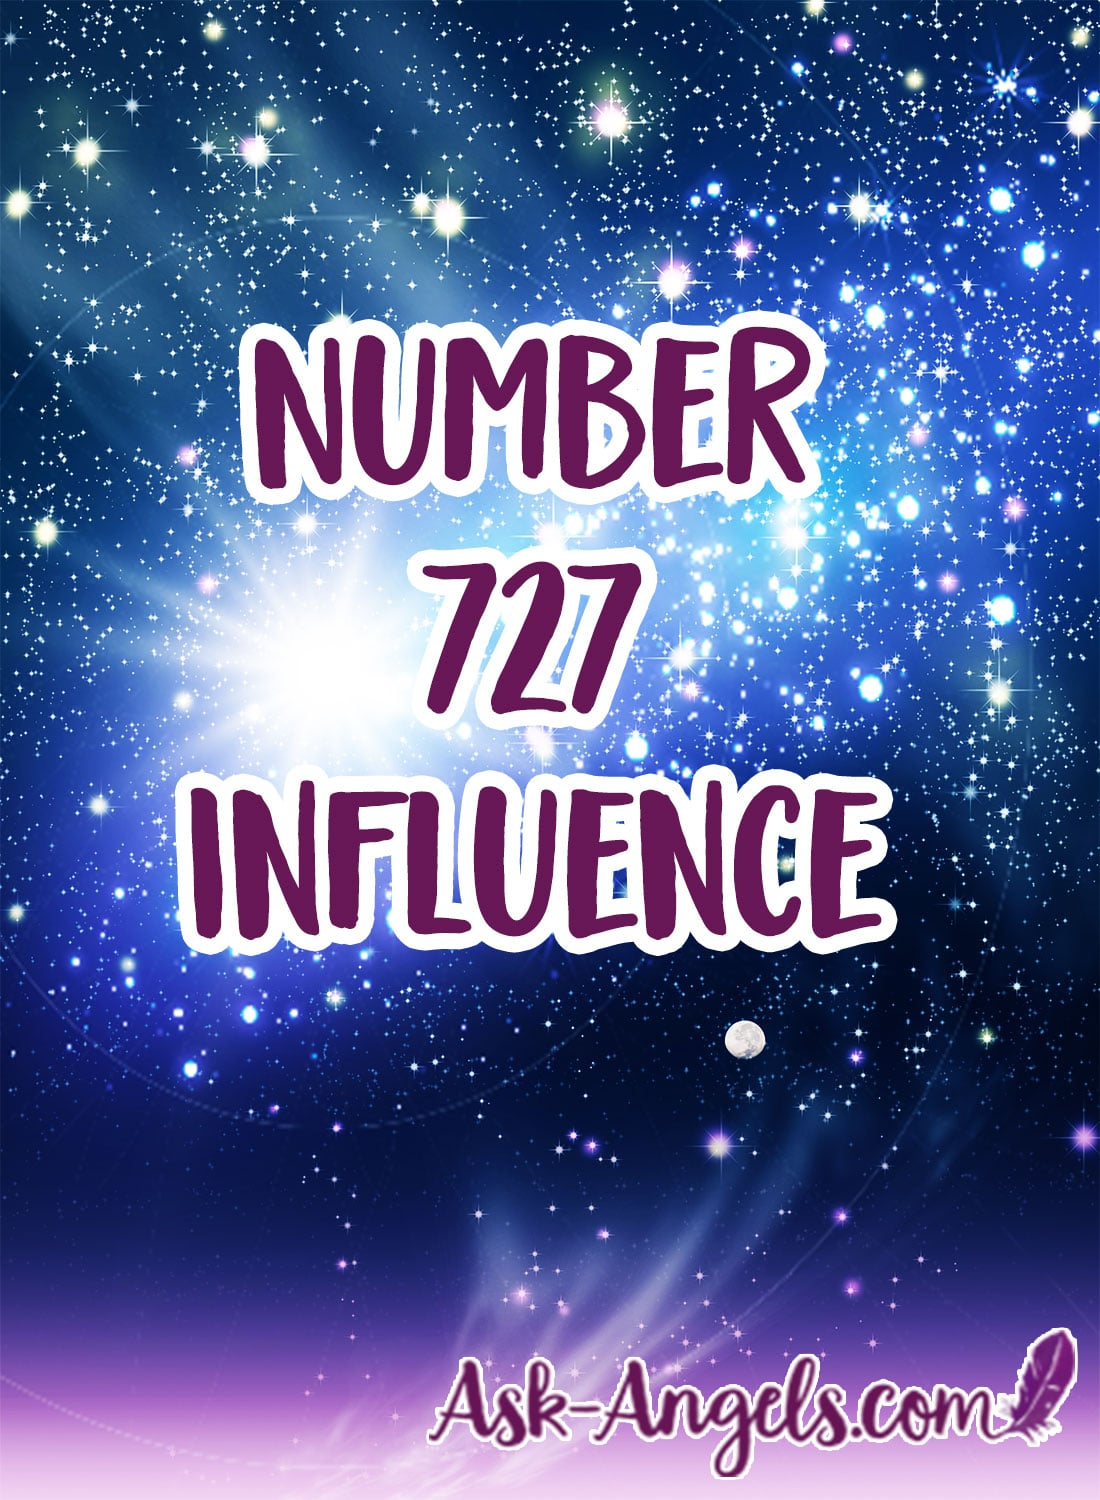 number 727 influence